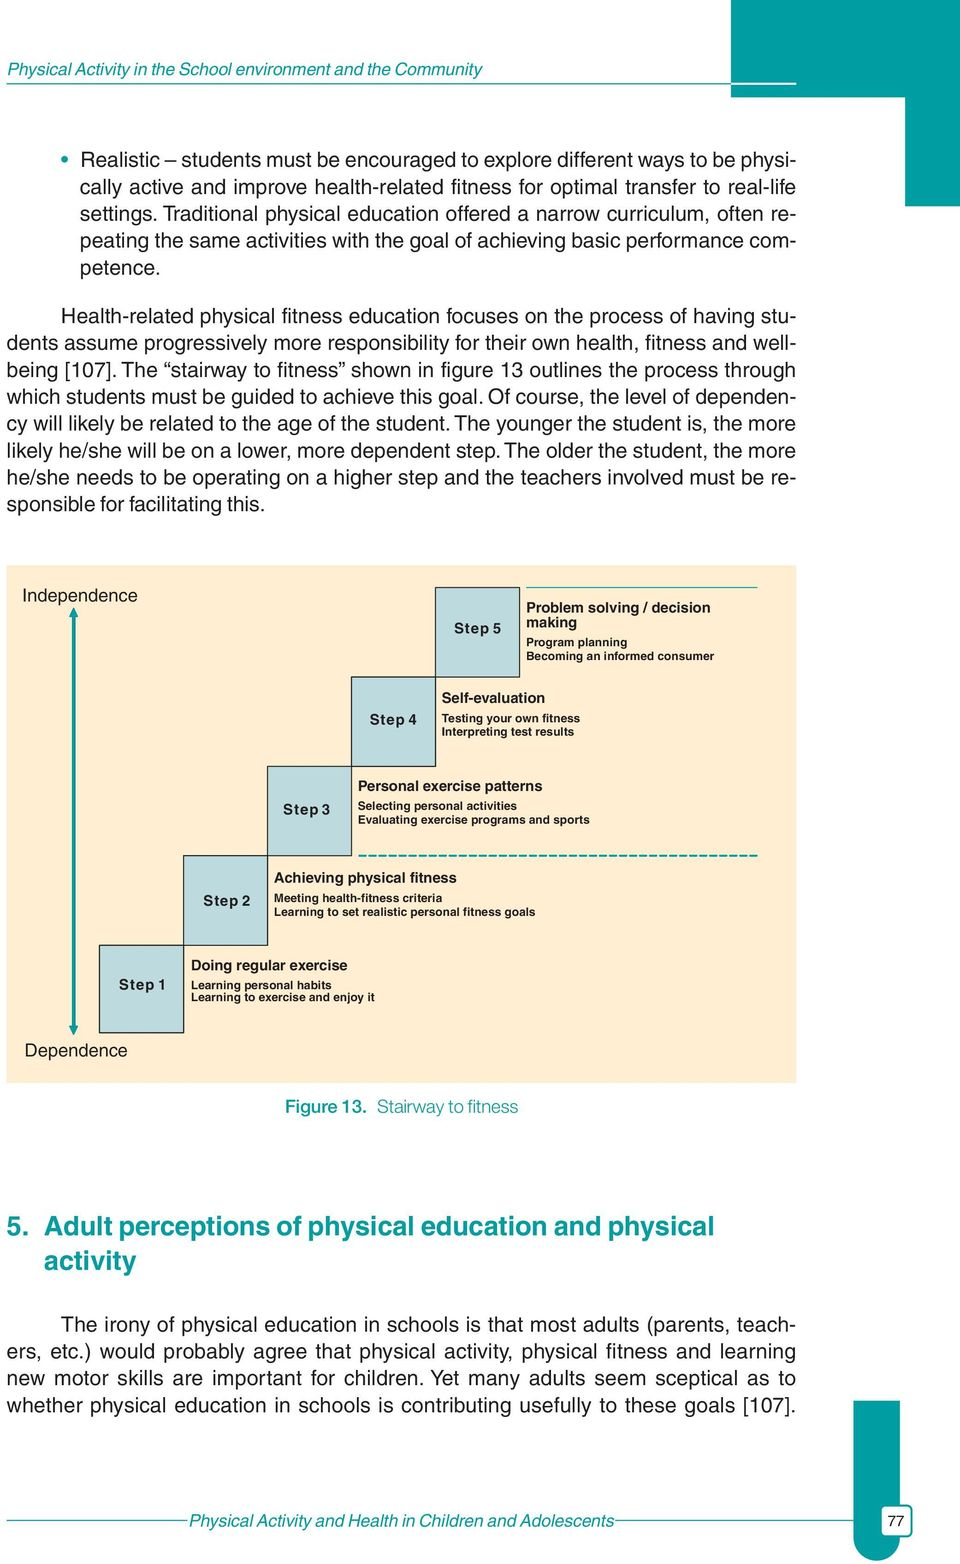 Health-related physical fitness education focuses on the process of having students assume progressively more responsibility for their own health, fitness and wellbeing [107].